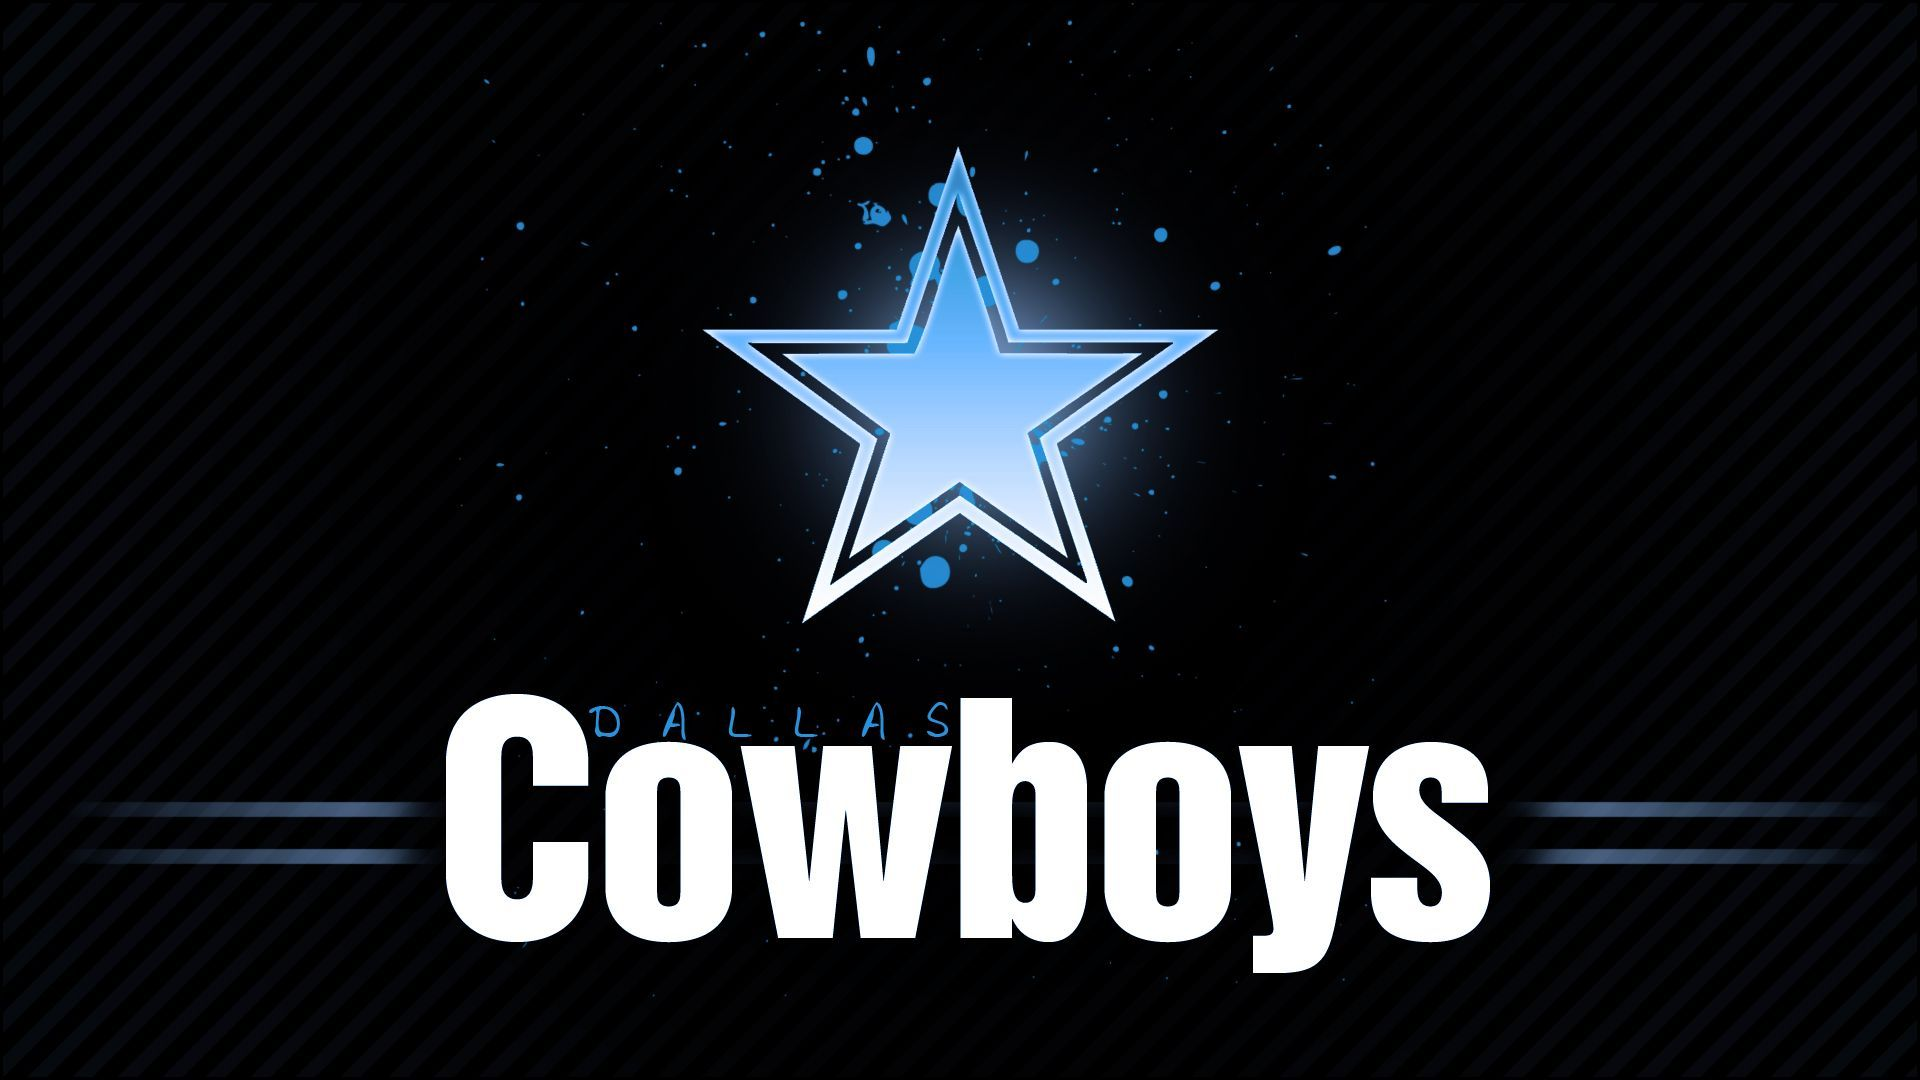 Dallas-Cowboys-HD-Backgrounds-wallpaper-wp3804331